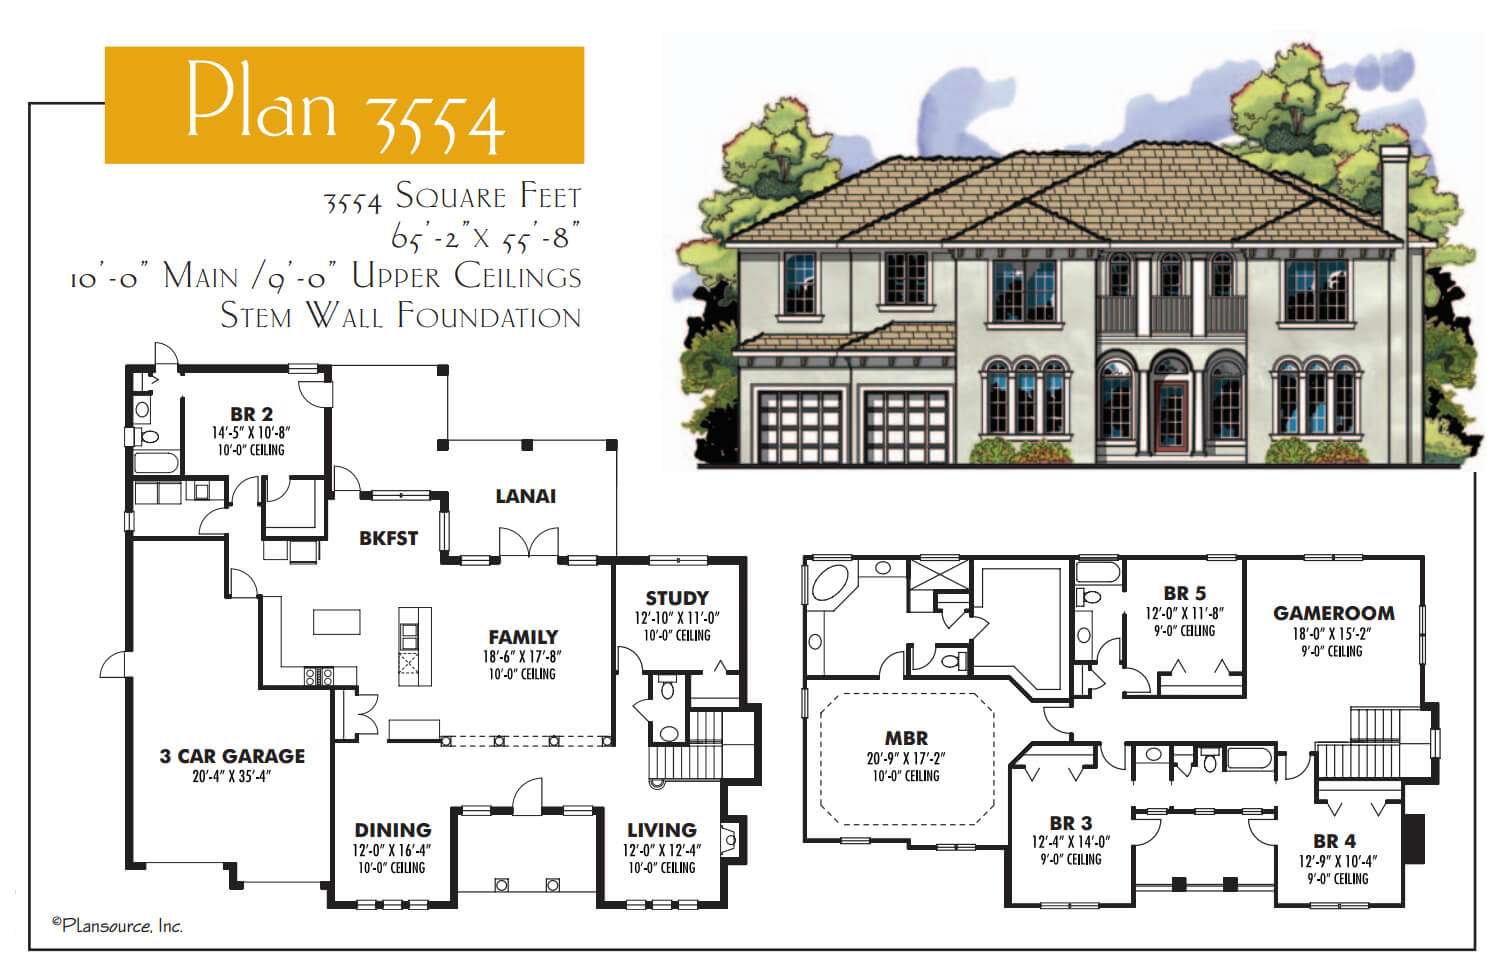 Floor Plans,3,501 SQ FT TO 4,000 SQ FT,1098